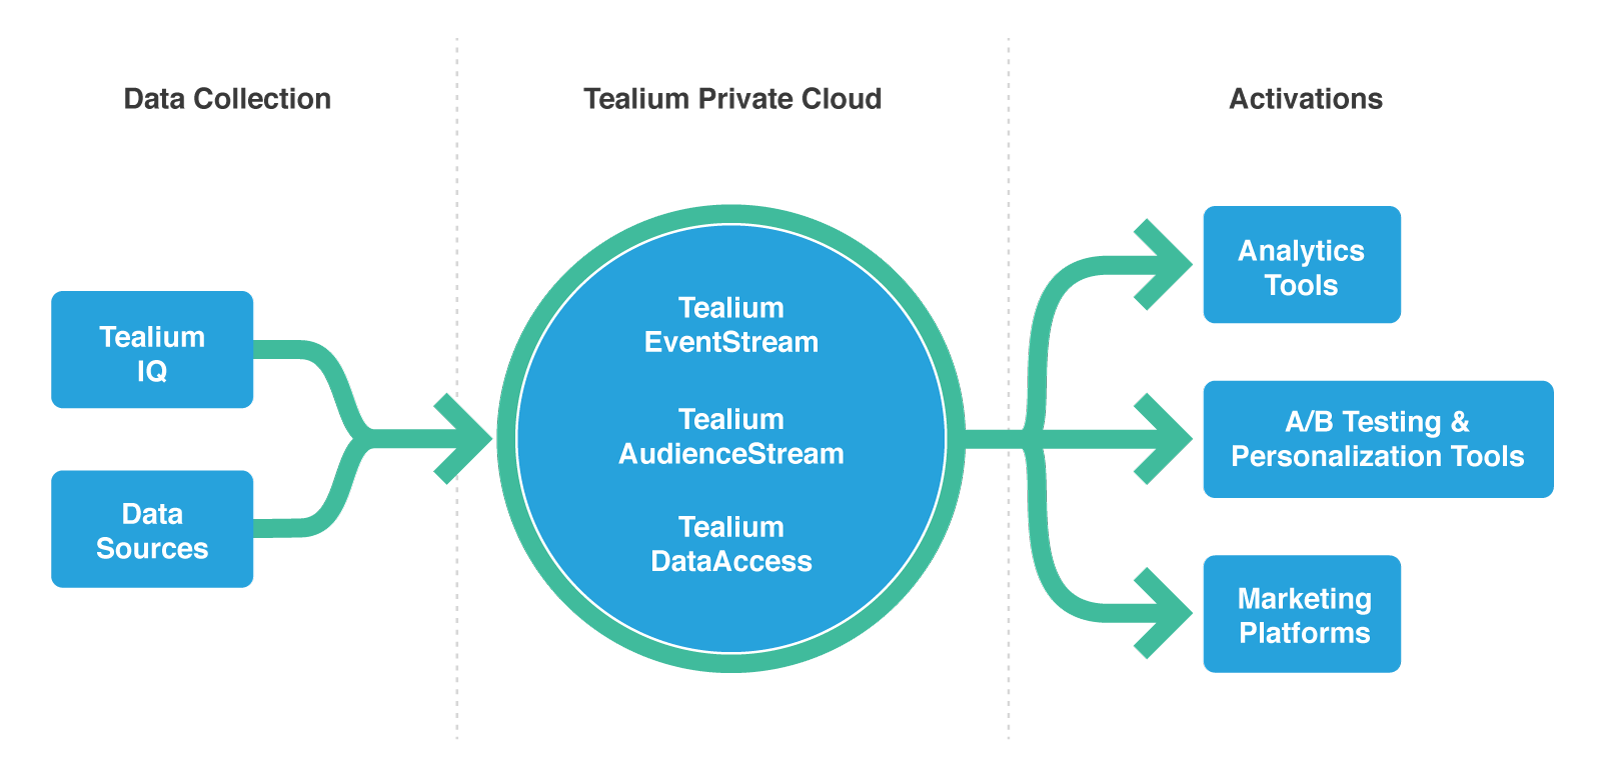 tealium's private cloud data collection and activation processes